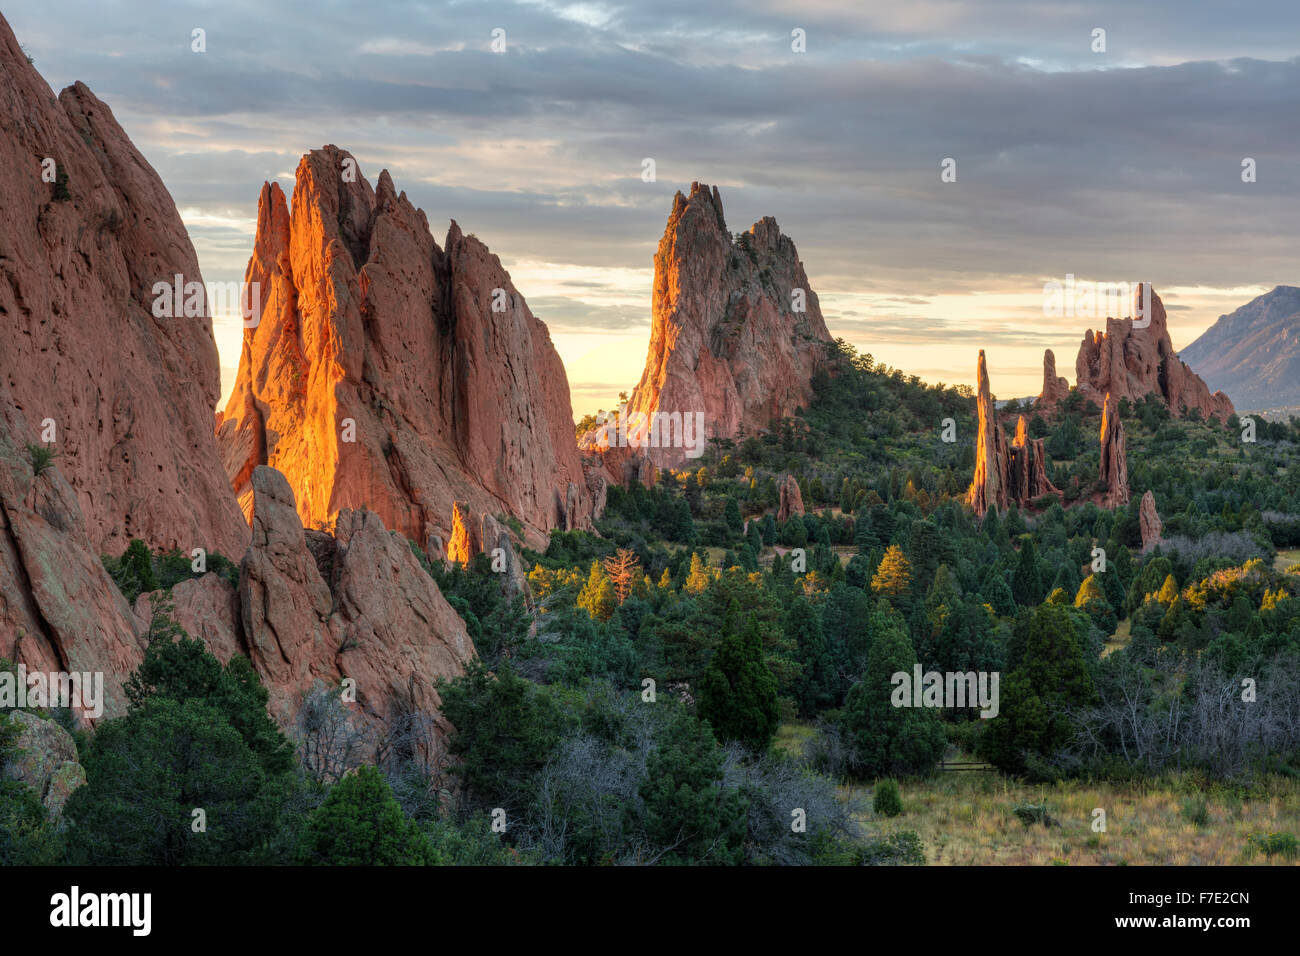 Sunrise On The Red Rocks Formations Of The Garden Of The Gods In